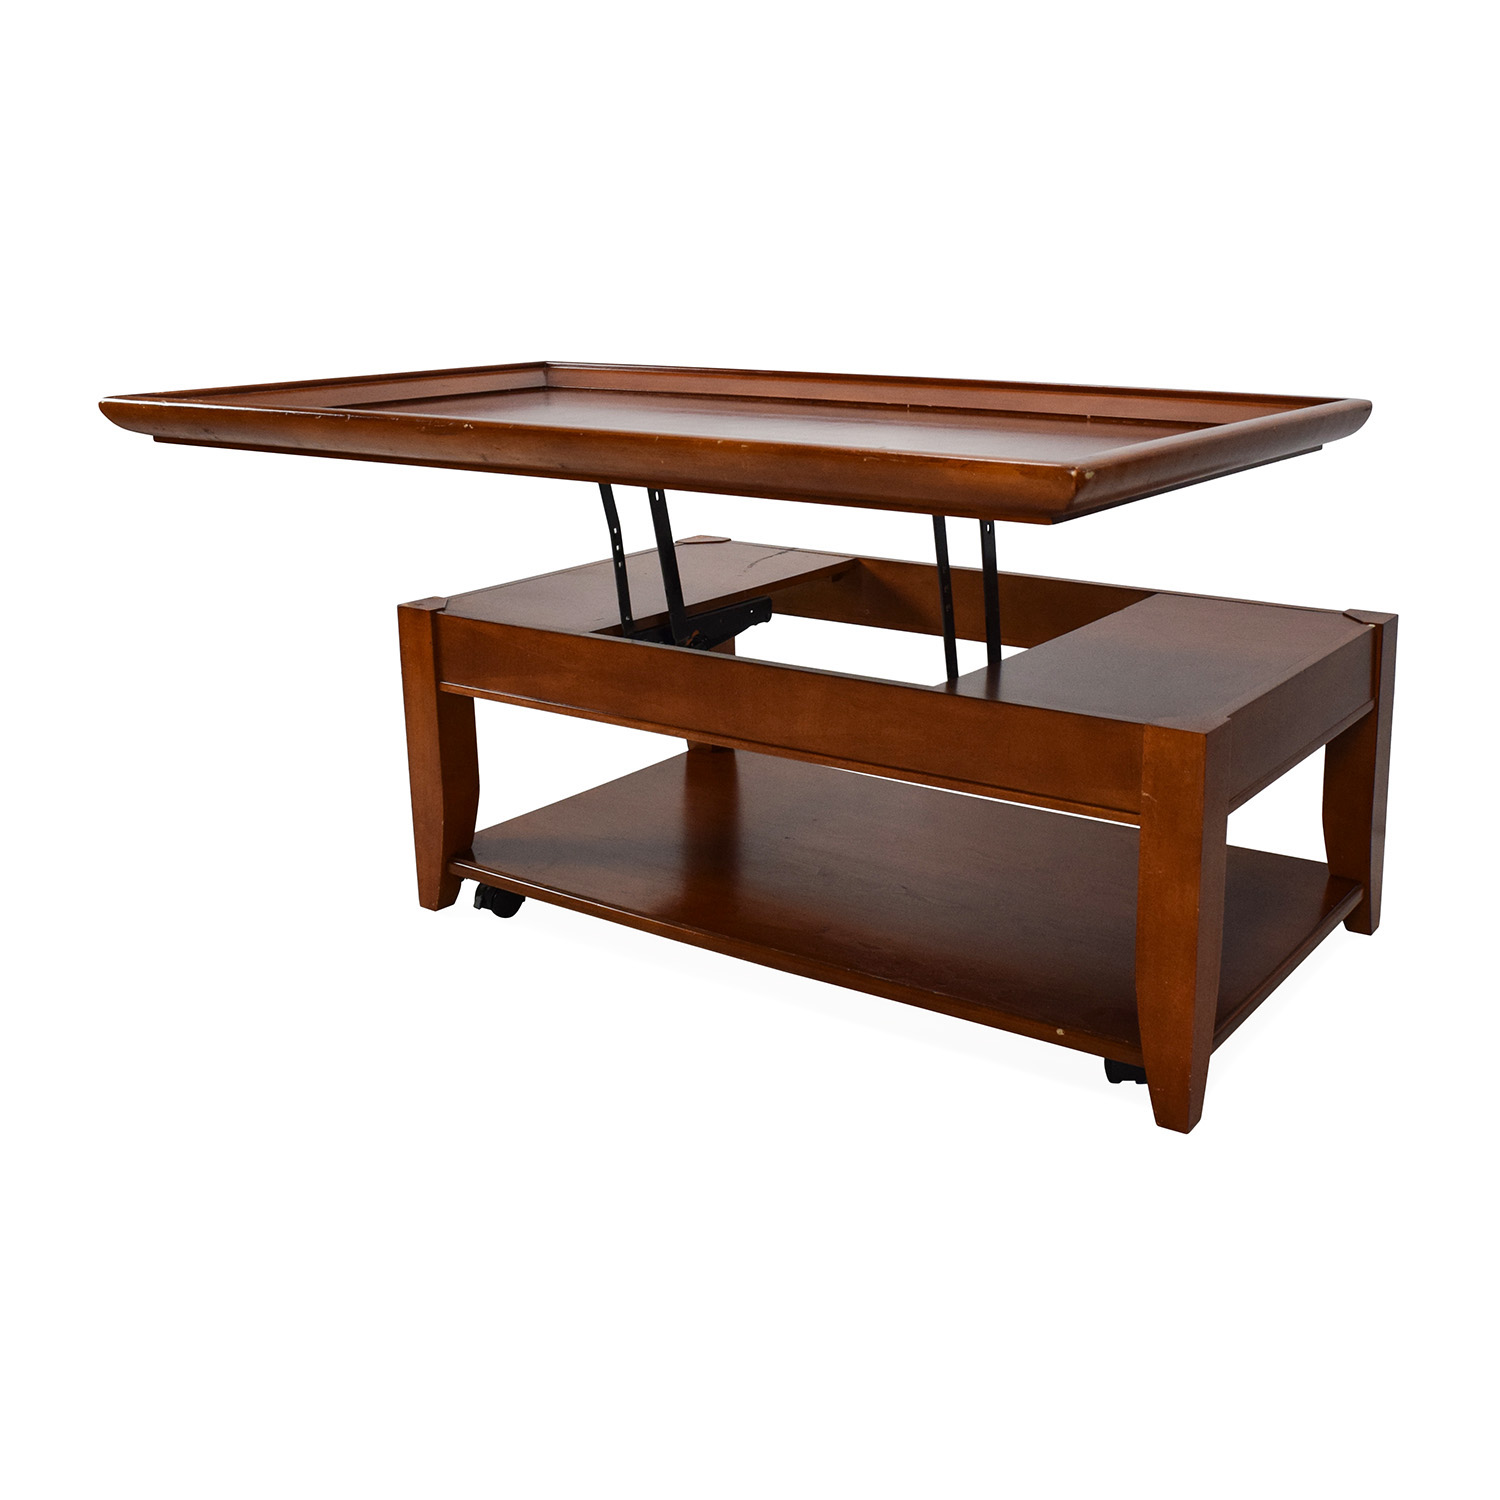 OFF Lane Furniture Lane Furniture Lift Top Coffee Table Tables